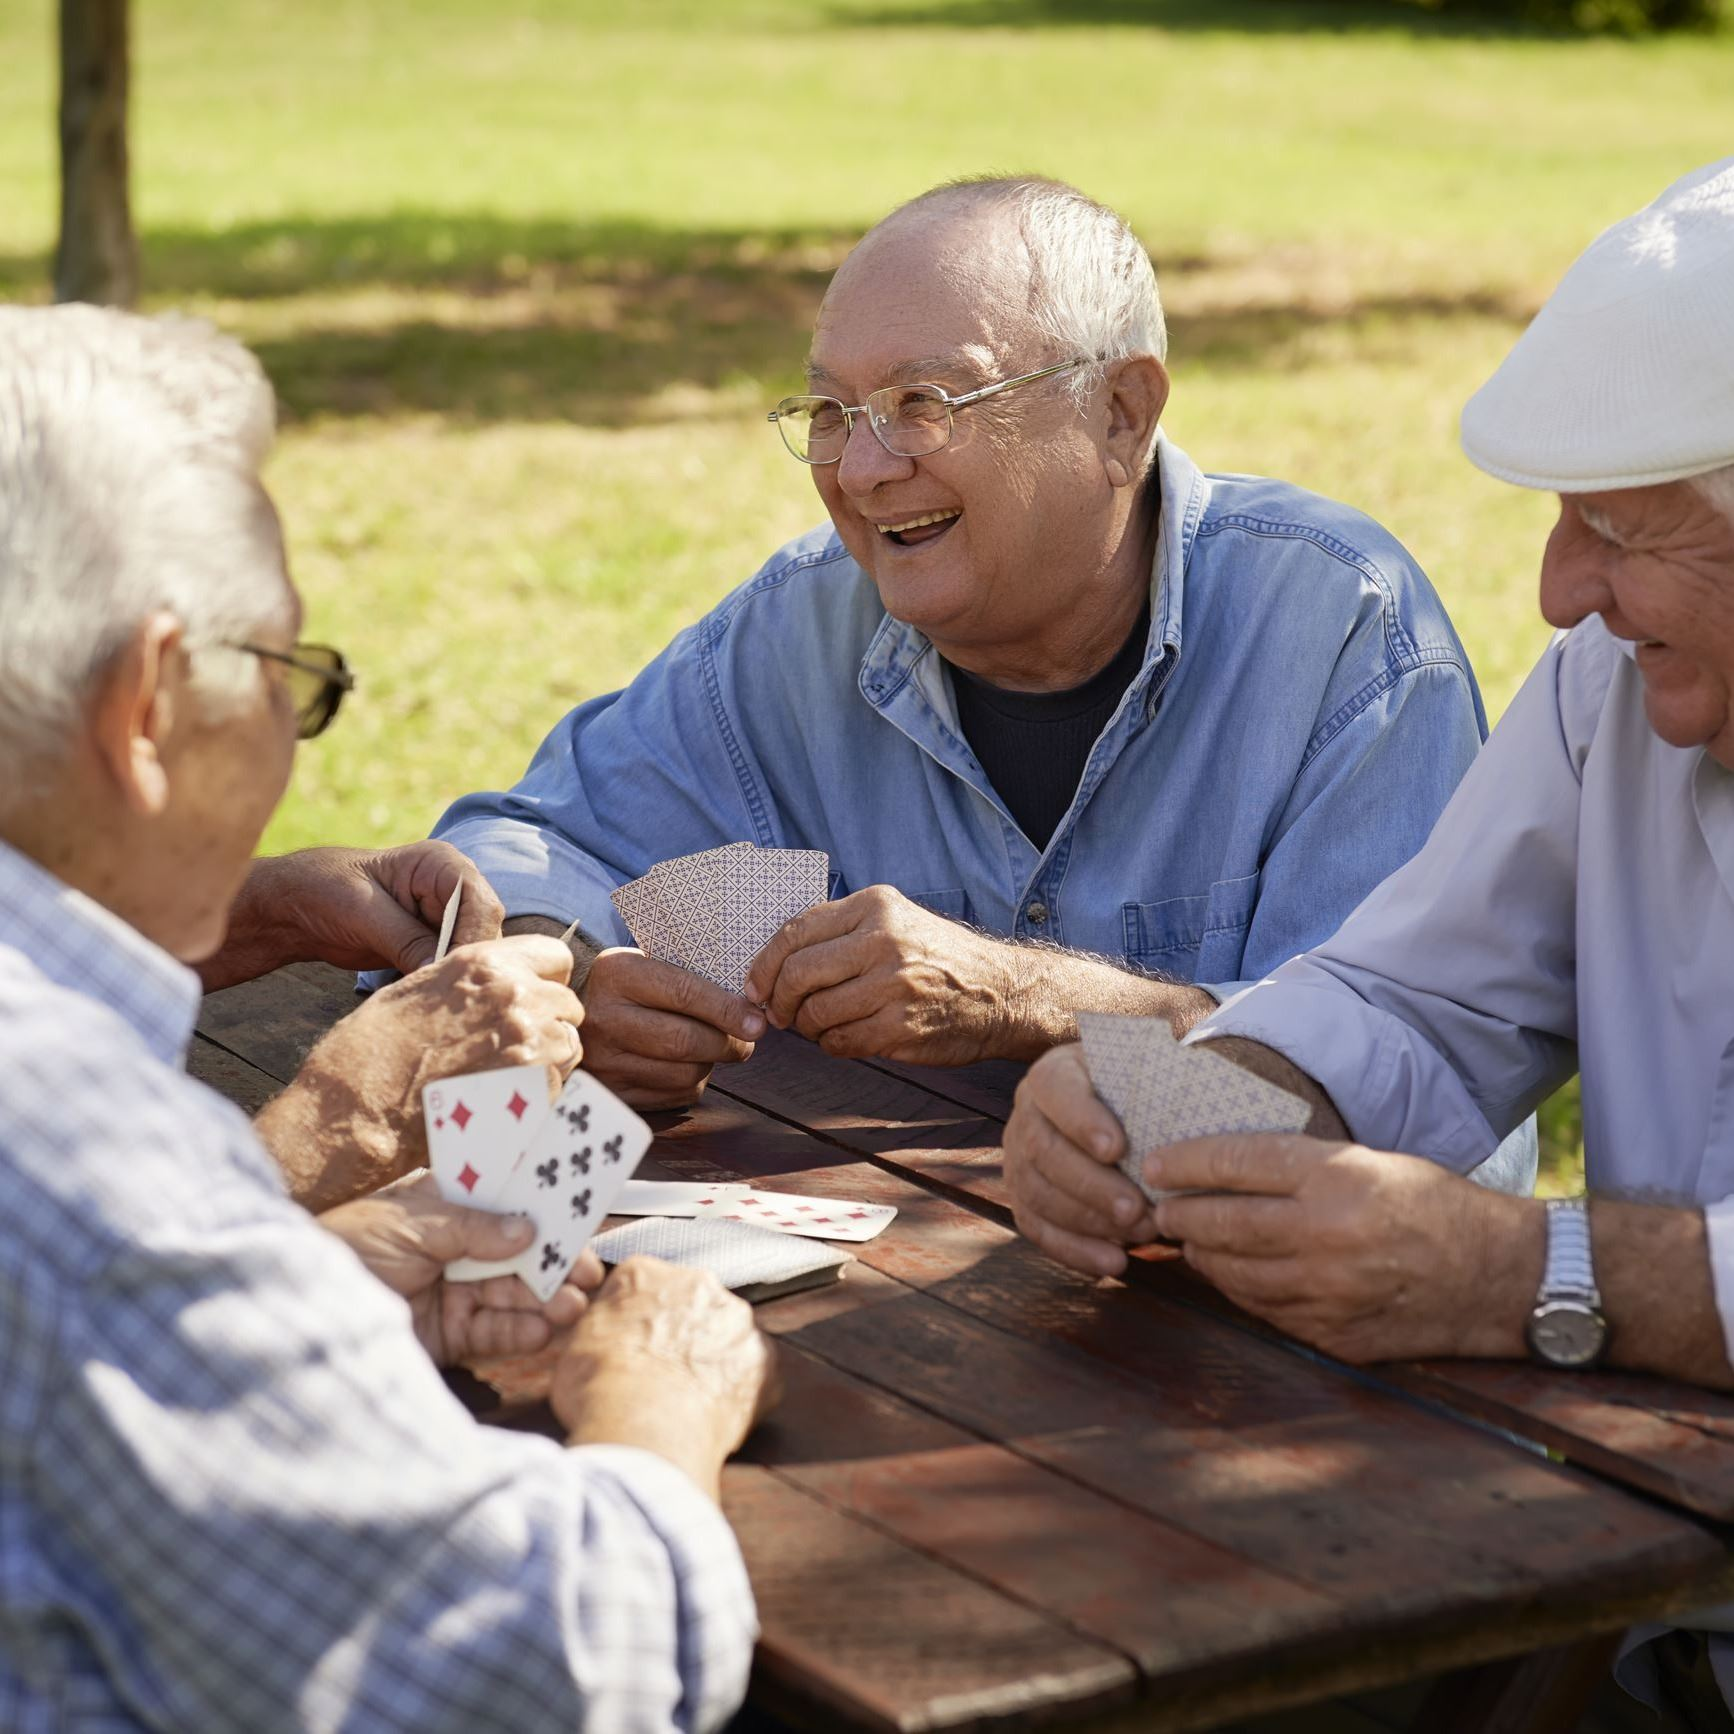 Elderly people in park playing cards.